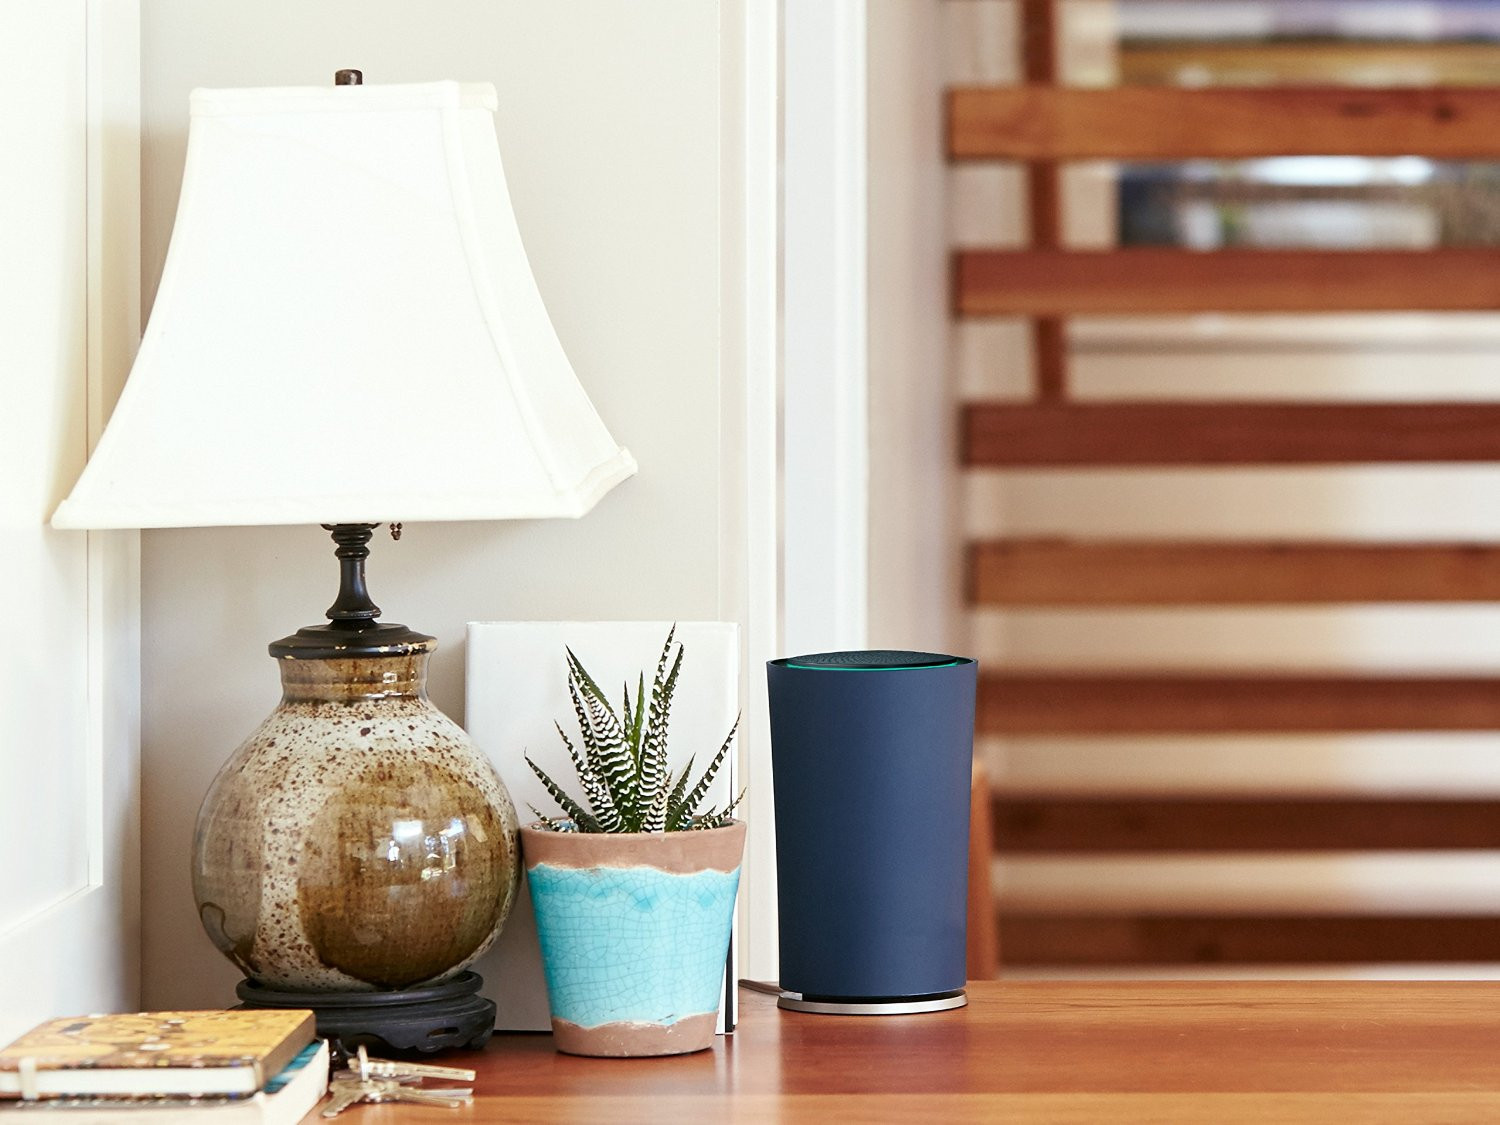 TP-LINK and Google Collaborate to Launch OnHub Router